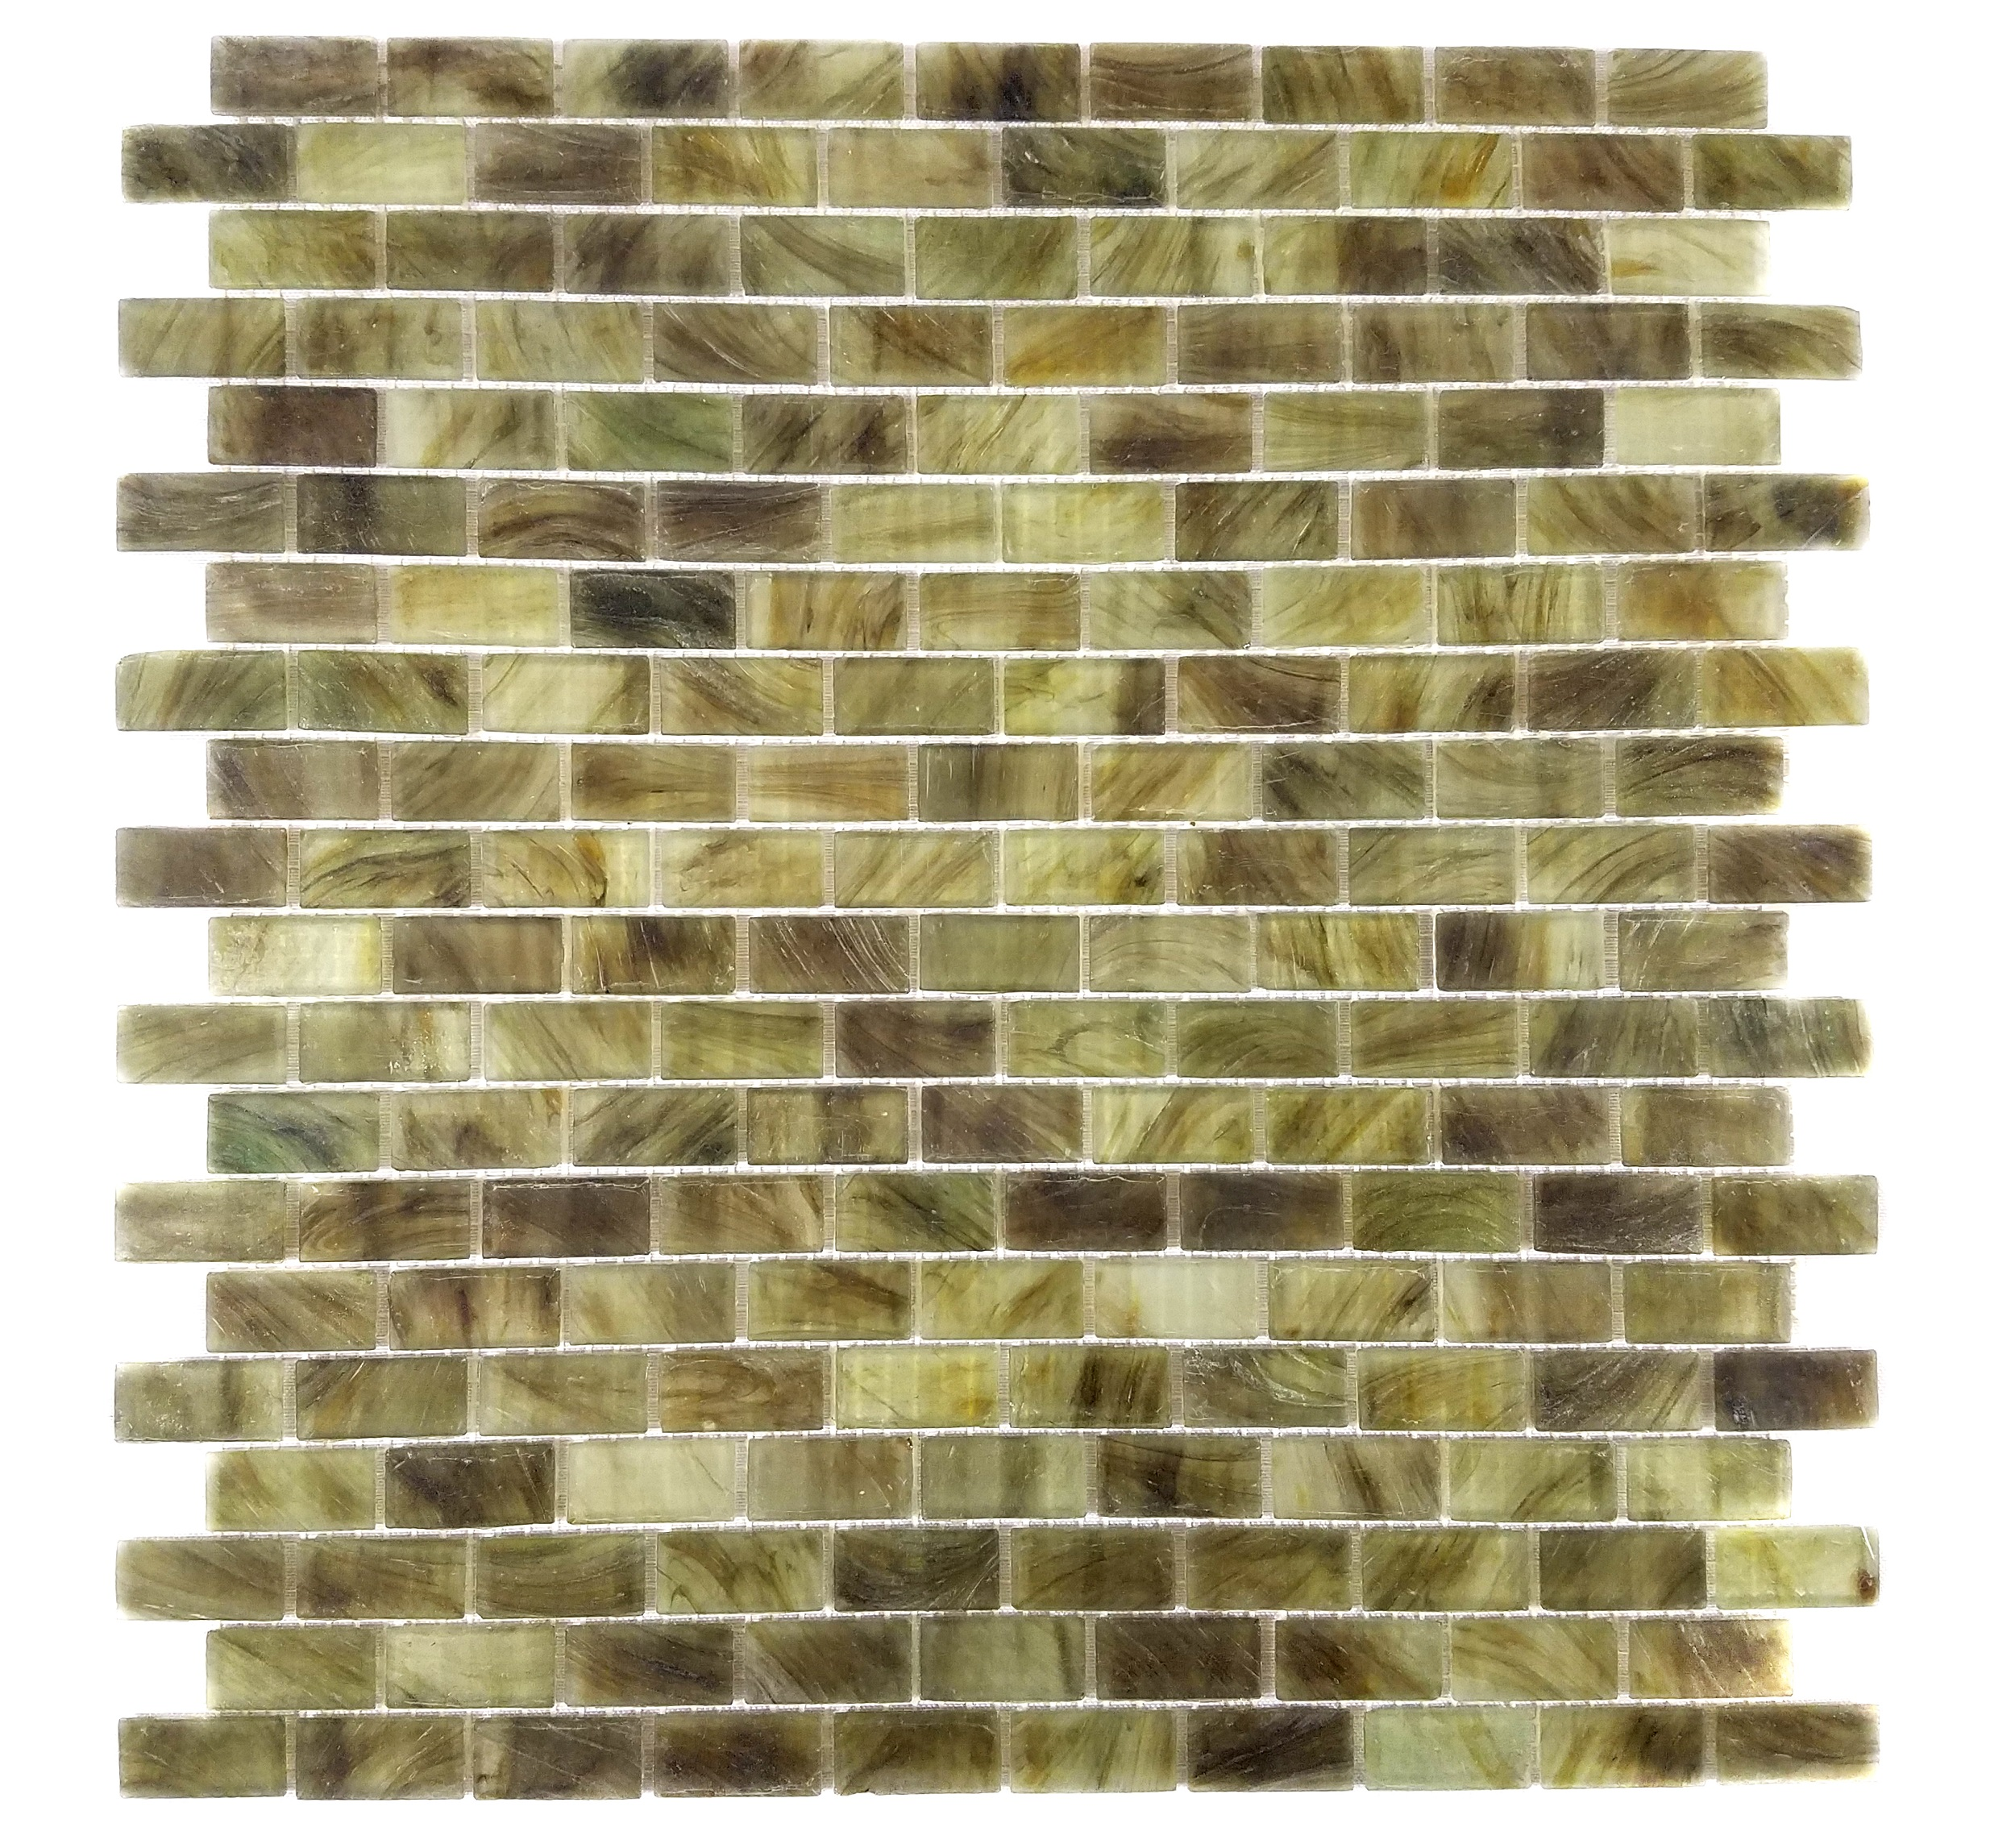 "Abolos- Amber 0.63"" x 1.25"" Glass Mosaic Tile in Brown/Green (1SHEET / 1.12SQFT)"